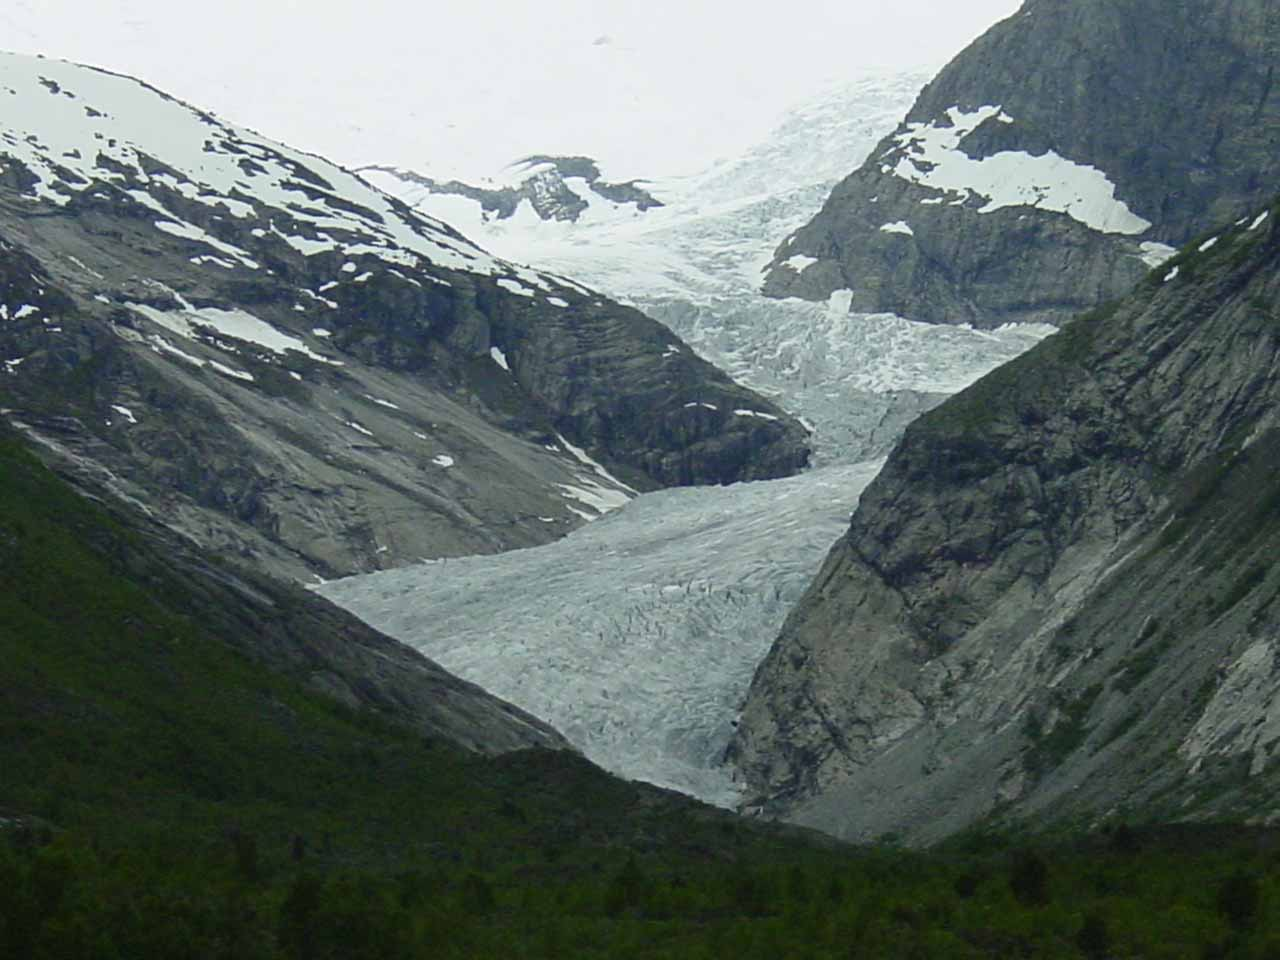 Probably the highlight of our visit to Jostedalen was the glacier Nigardsbreen.  It was too bad the weather was a bit gloomy otherwise the glacier's hues would have really stood out!